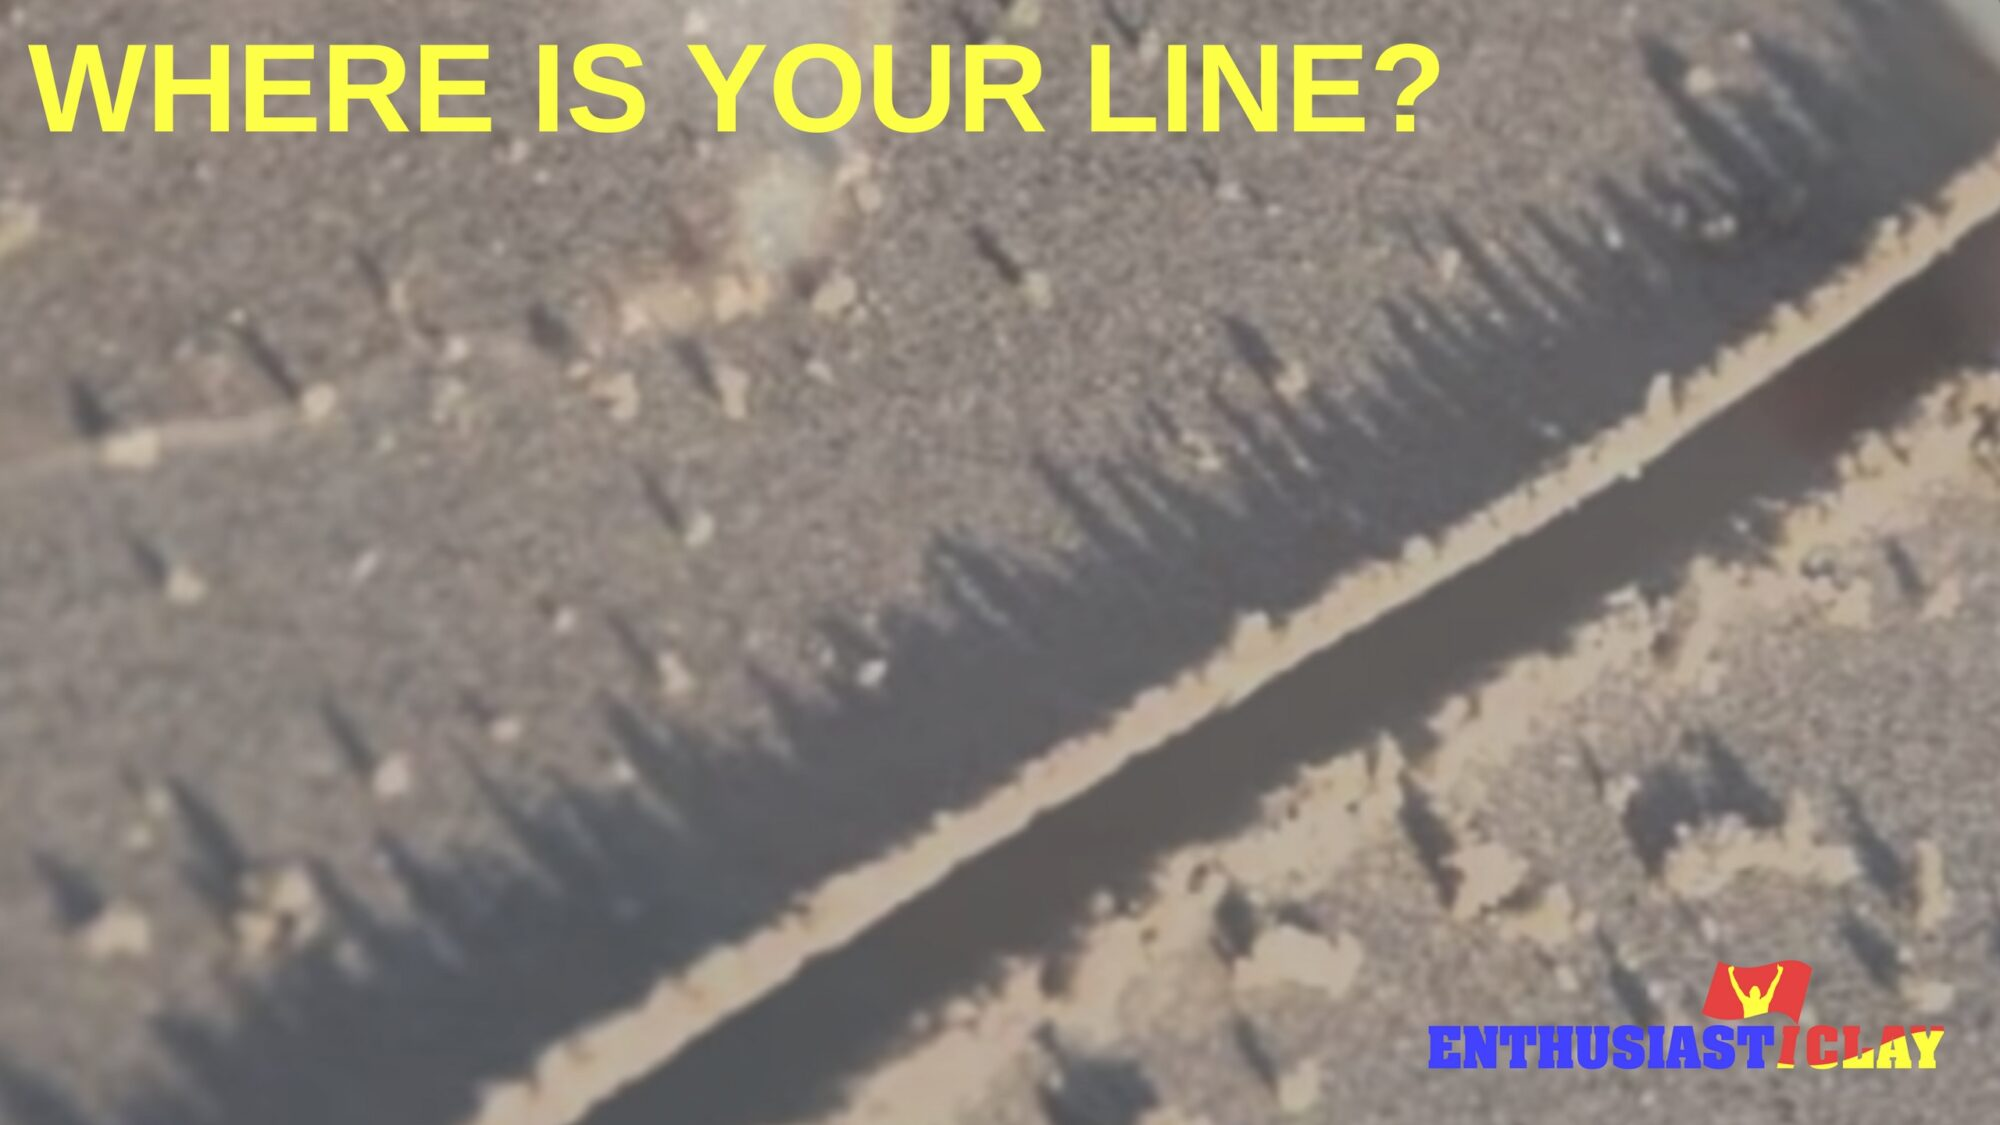 Where is your line?